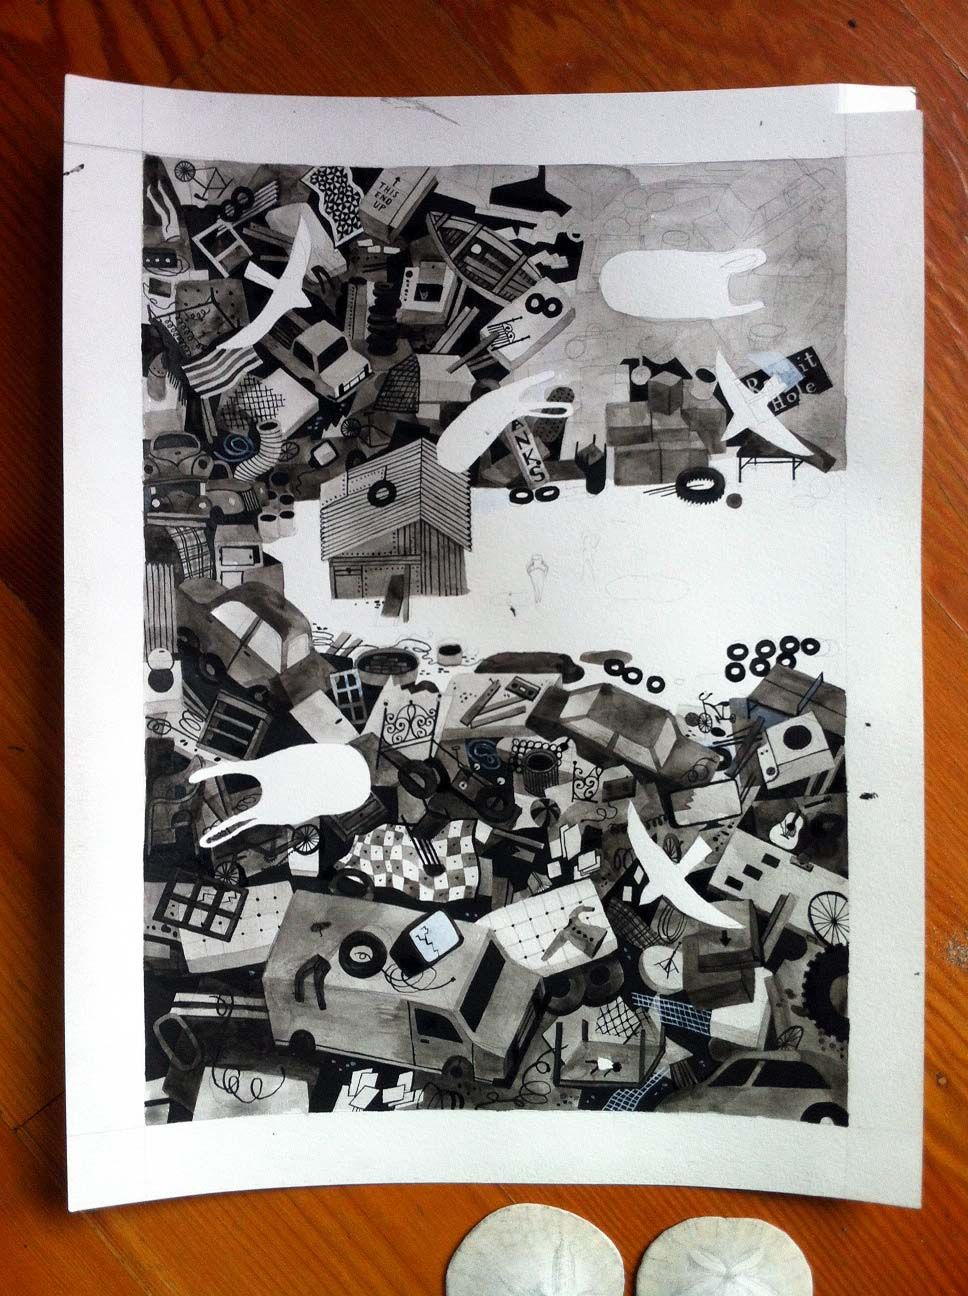 garbage, mid-process, by Carson Ellis. Bird's eye, and I like seeing the process